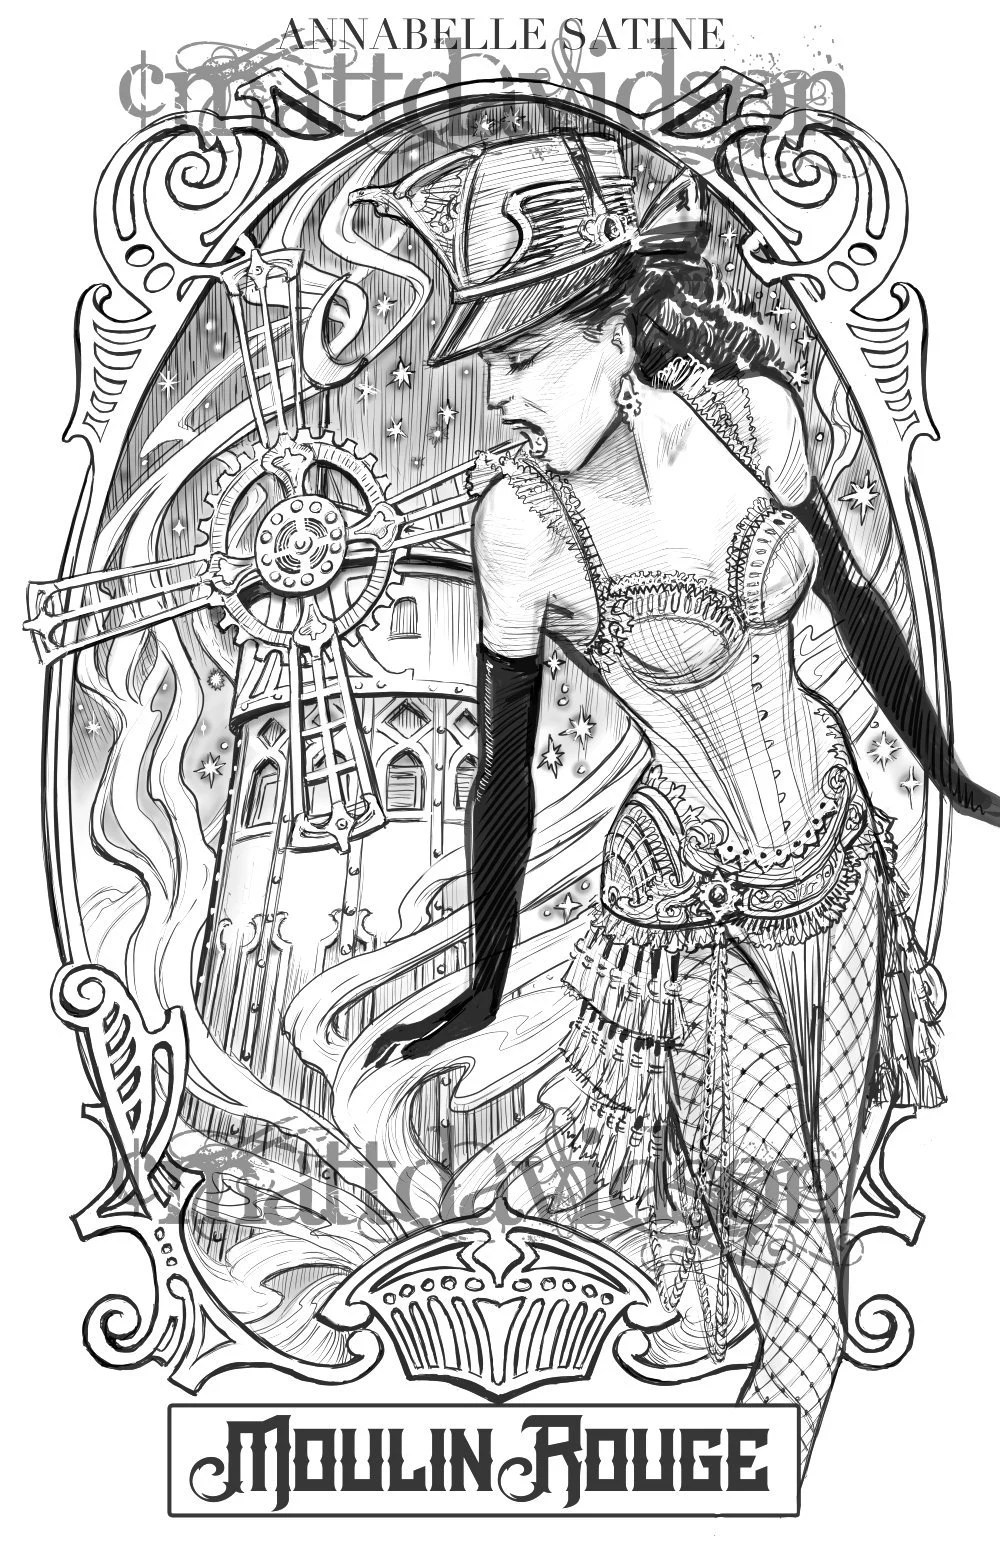 Moulin Rouge Libro Moulin Rouge Adult Colouring Page Victorian Coloring Book Grayscale Black And White Sepia Antique Engraving